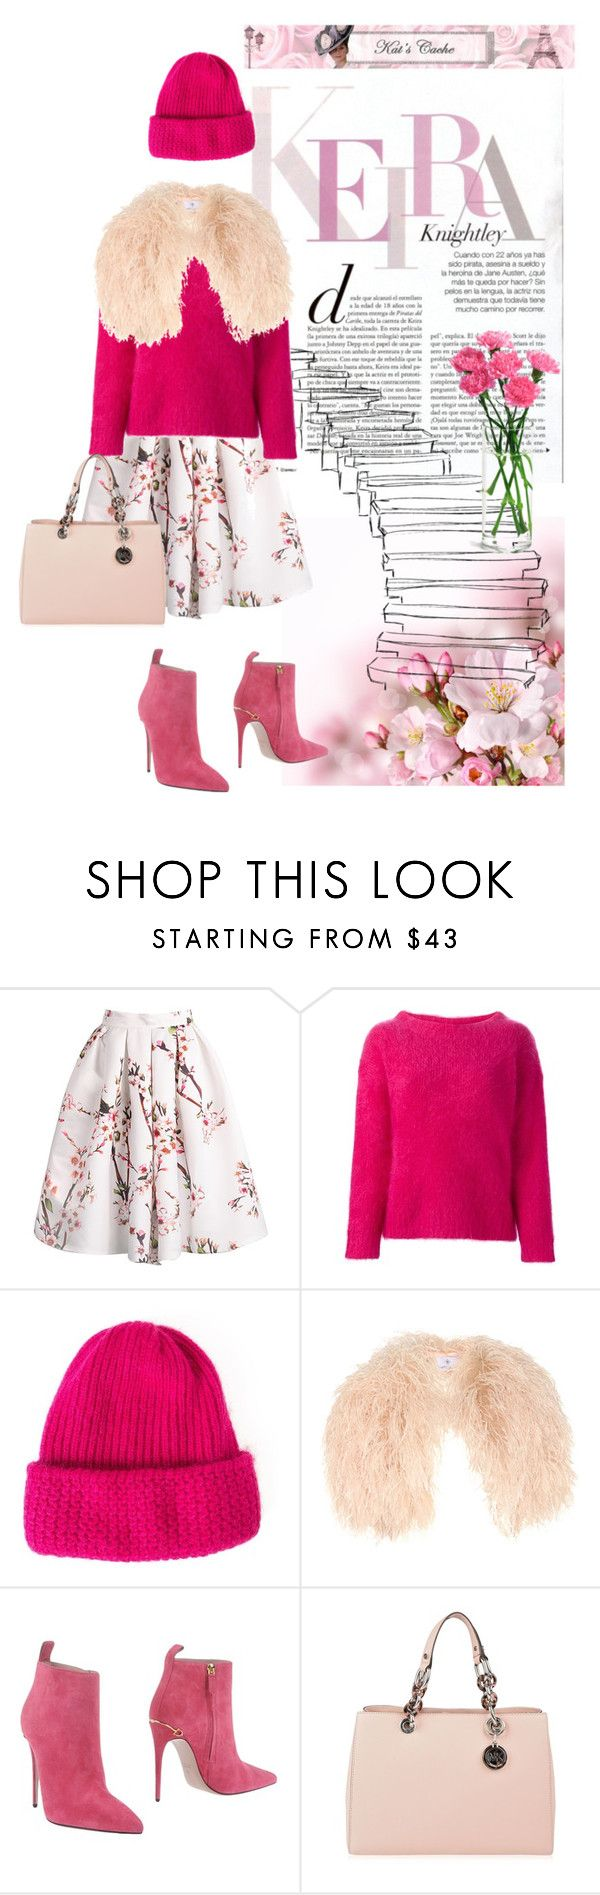 """."" by irenpin ❤ liked on Polyvore featuring Burberry, Tak.Ori, Gucci, MICHAEL Michael Kors, styleicon and spring2016"